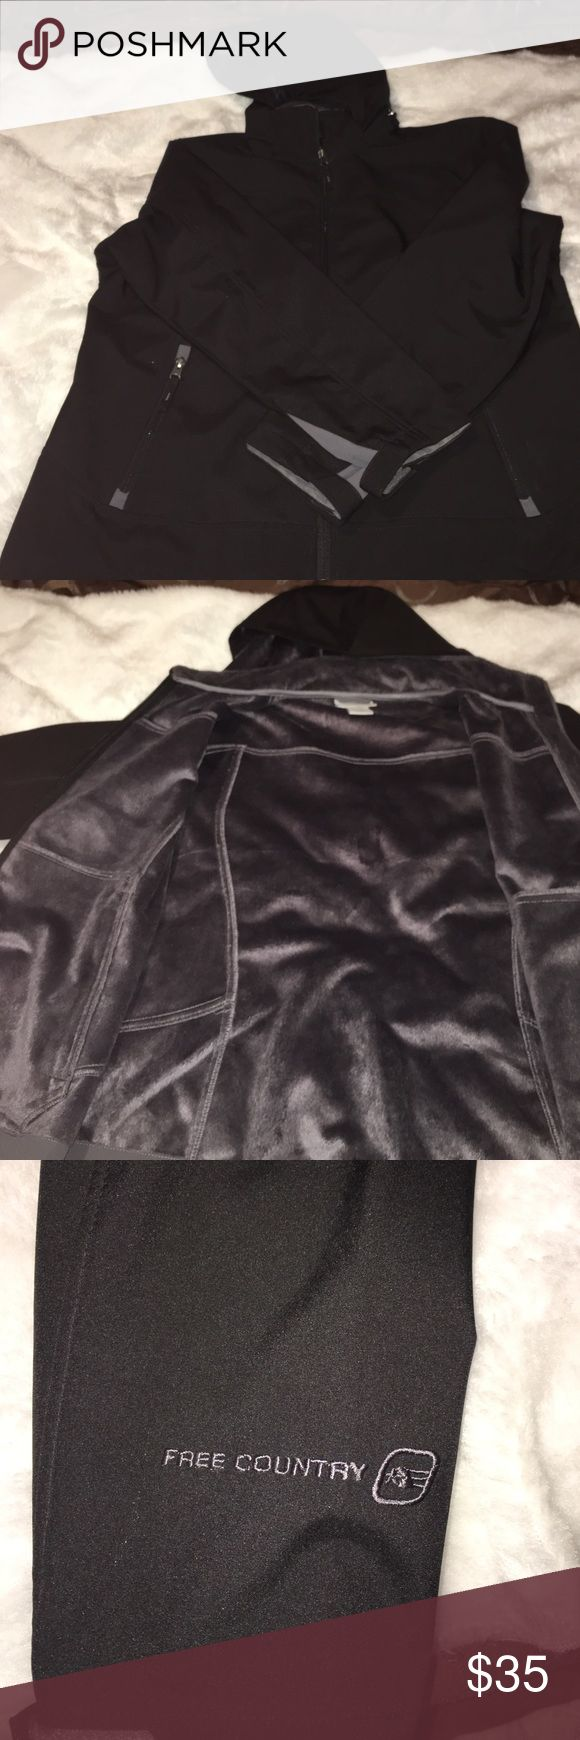 Free Country women's hooded jacket Free Country jacket with zipper pockets on the front soft&warm inside... like new condition.. hood is detachable...Velcro for adjusting at the wrists...priced to sell‼️‼️‼️‼️ Free Country Jackets & Coats Utility Jackets